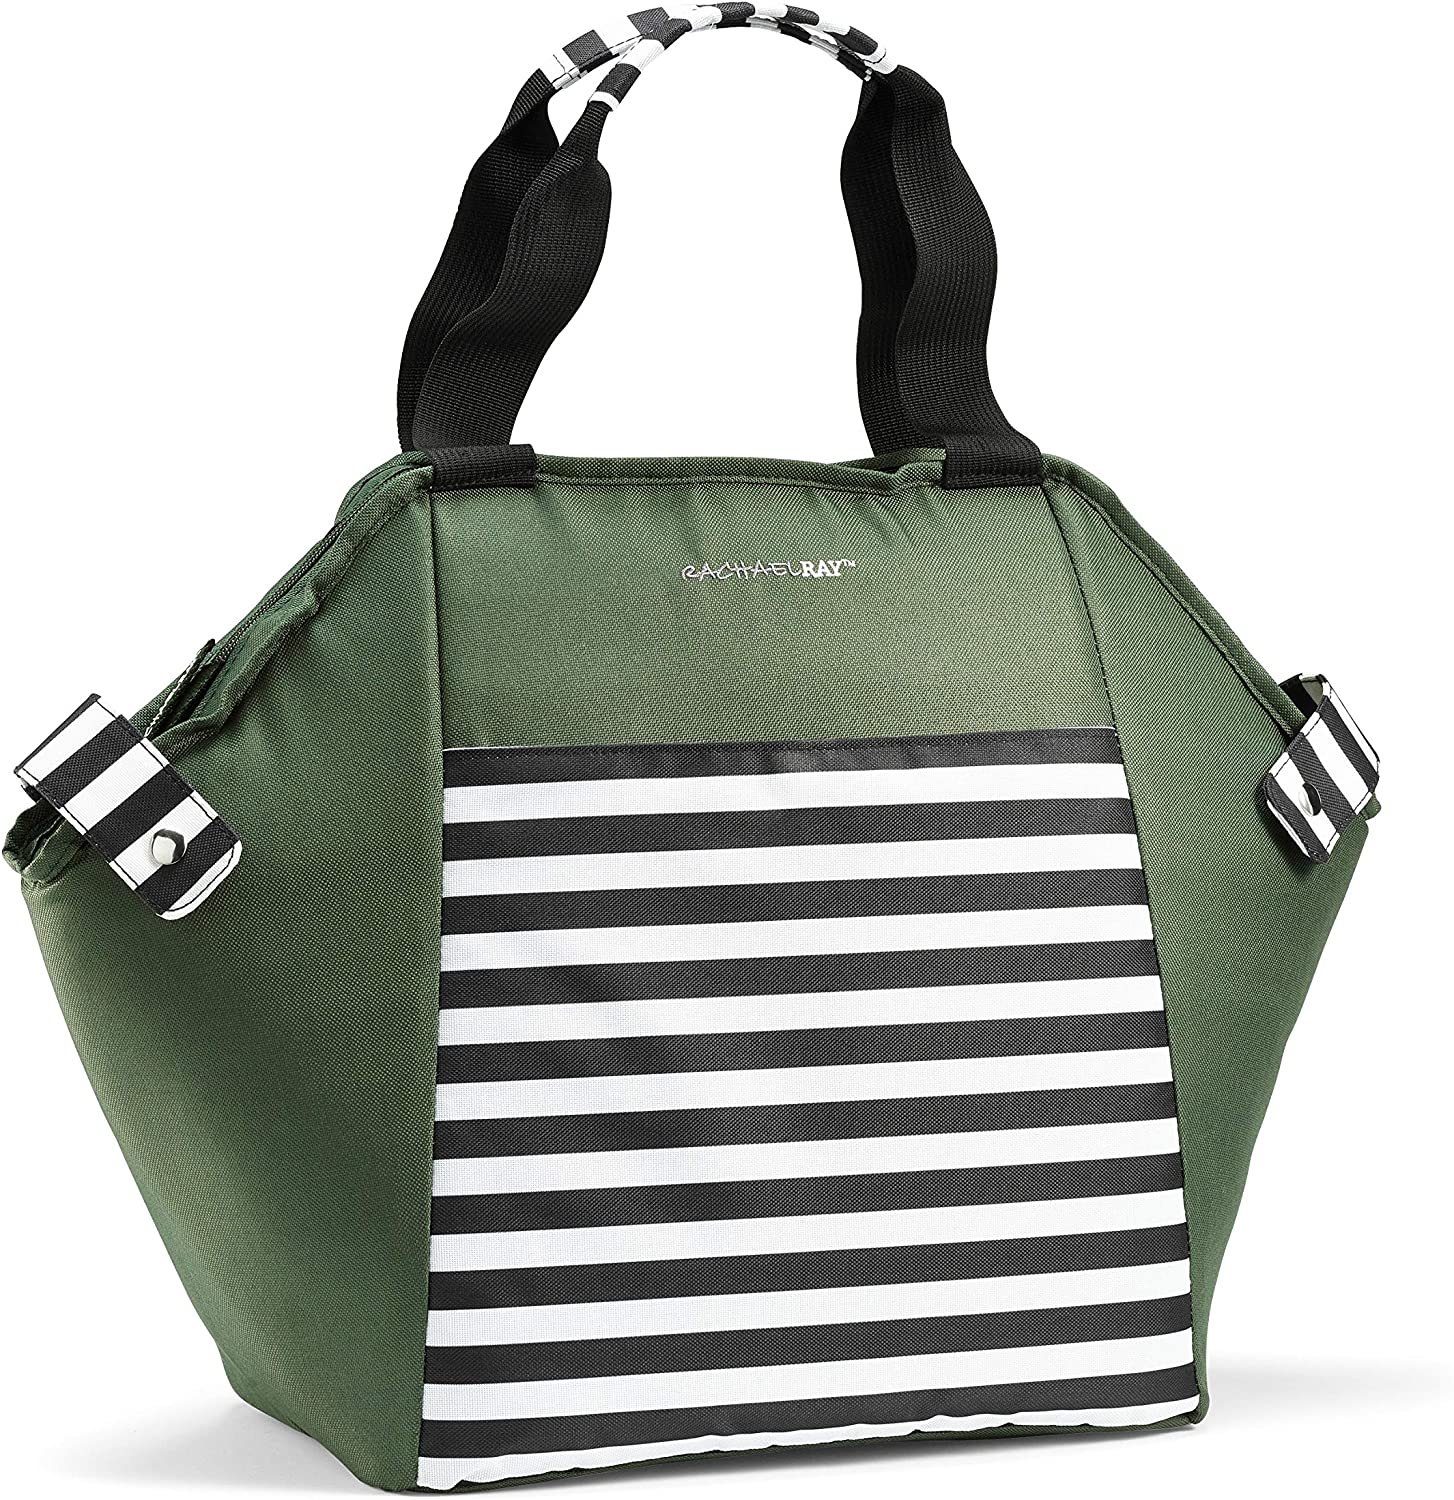 Rachael Ray Hexagon Cooler Tote, Large Insulated Bag for Groceries, Shopping, Beach, Camping and More, Zipper Top, Green with Black Nautical Stripes